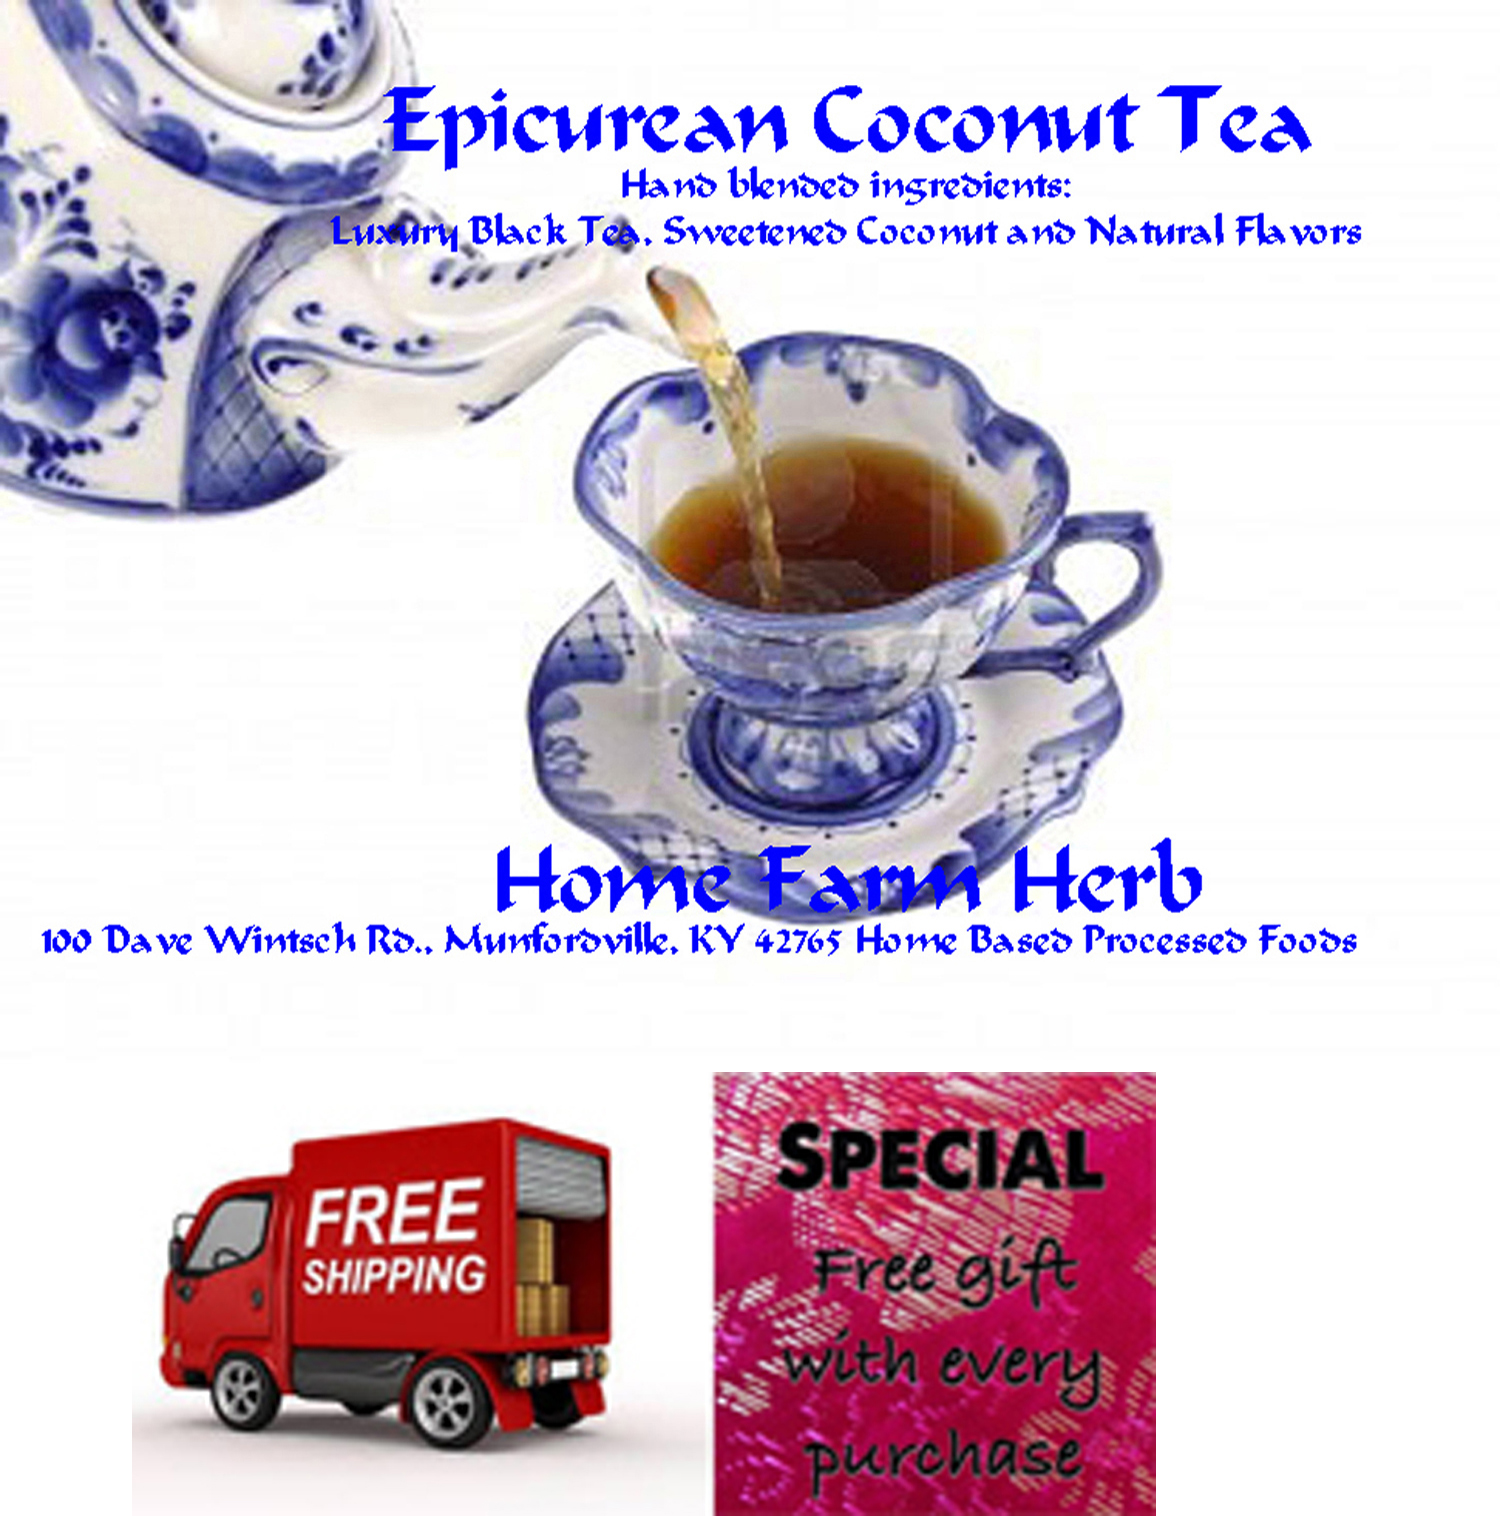 Epicurean Coconut Tea, Order now, Absolutely Delicious, Free shipping & FREE gift!